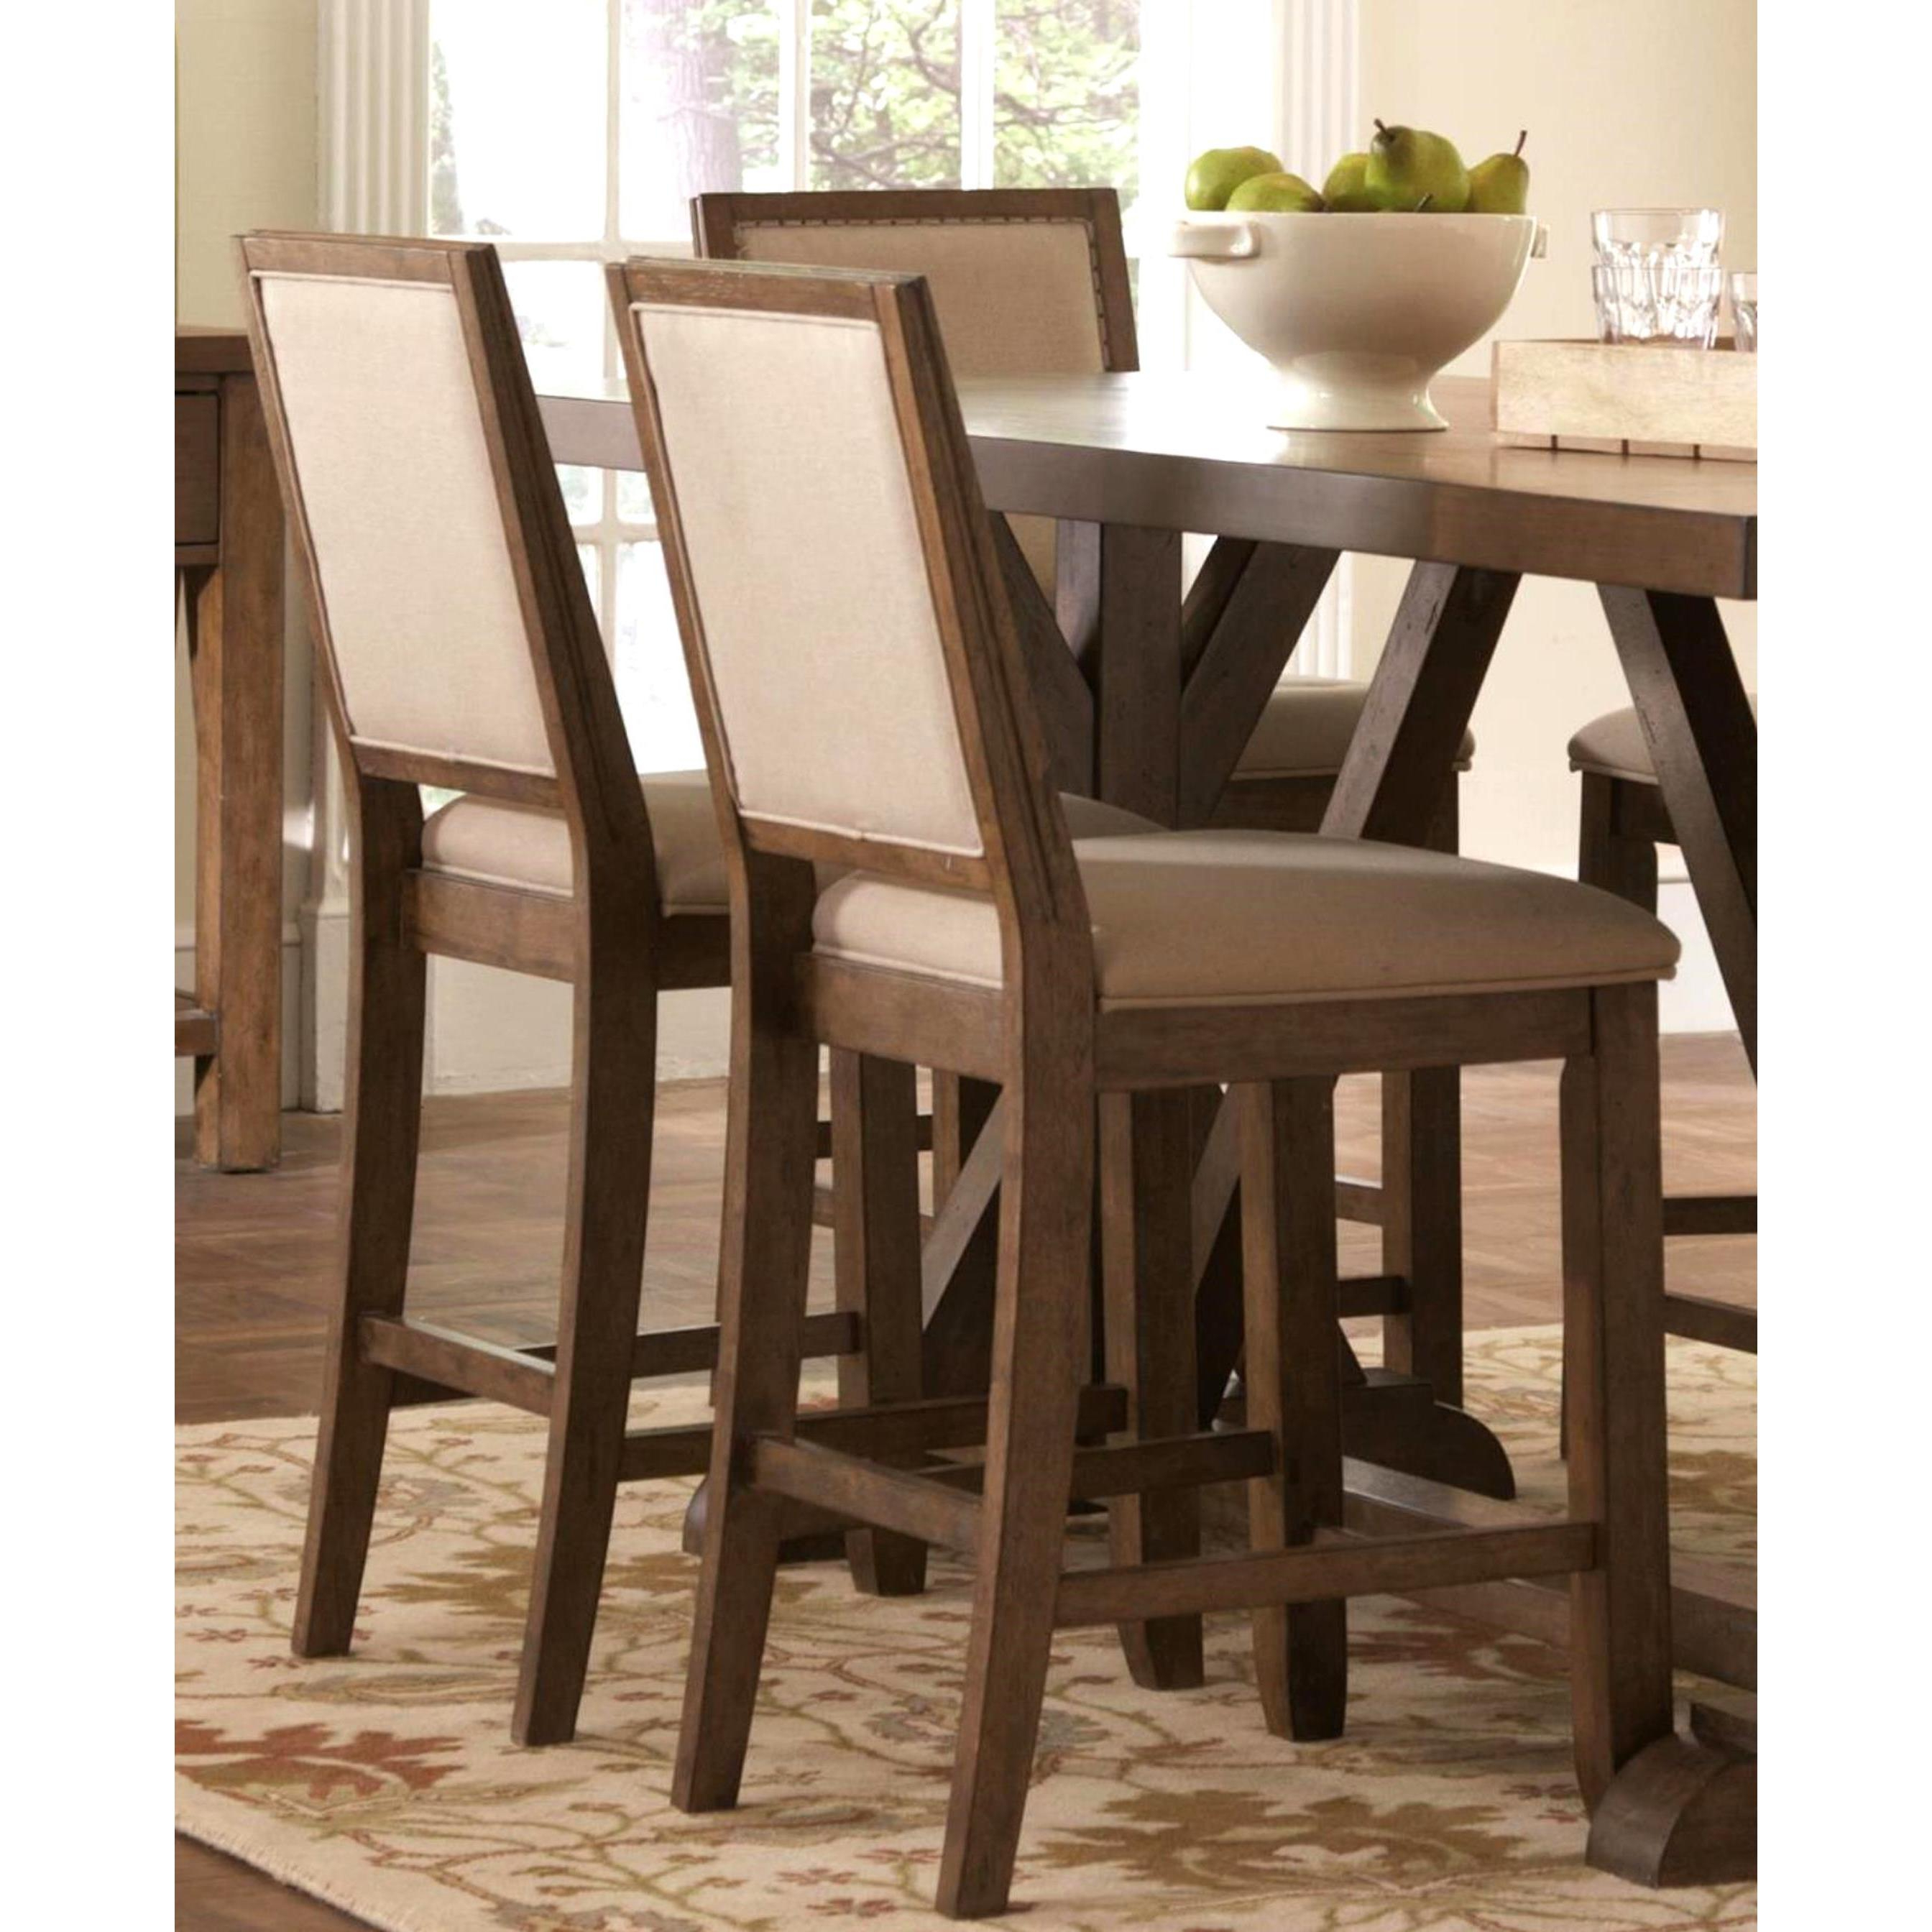 Well Known Wallflower 3 Piece Dining Sets Regarding Shop Sontuoso Rustic Trestle Base European Design Counter Height (View 6 of 25)